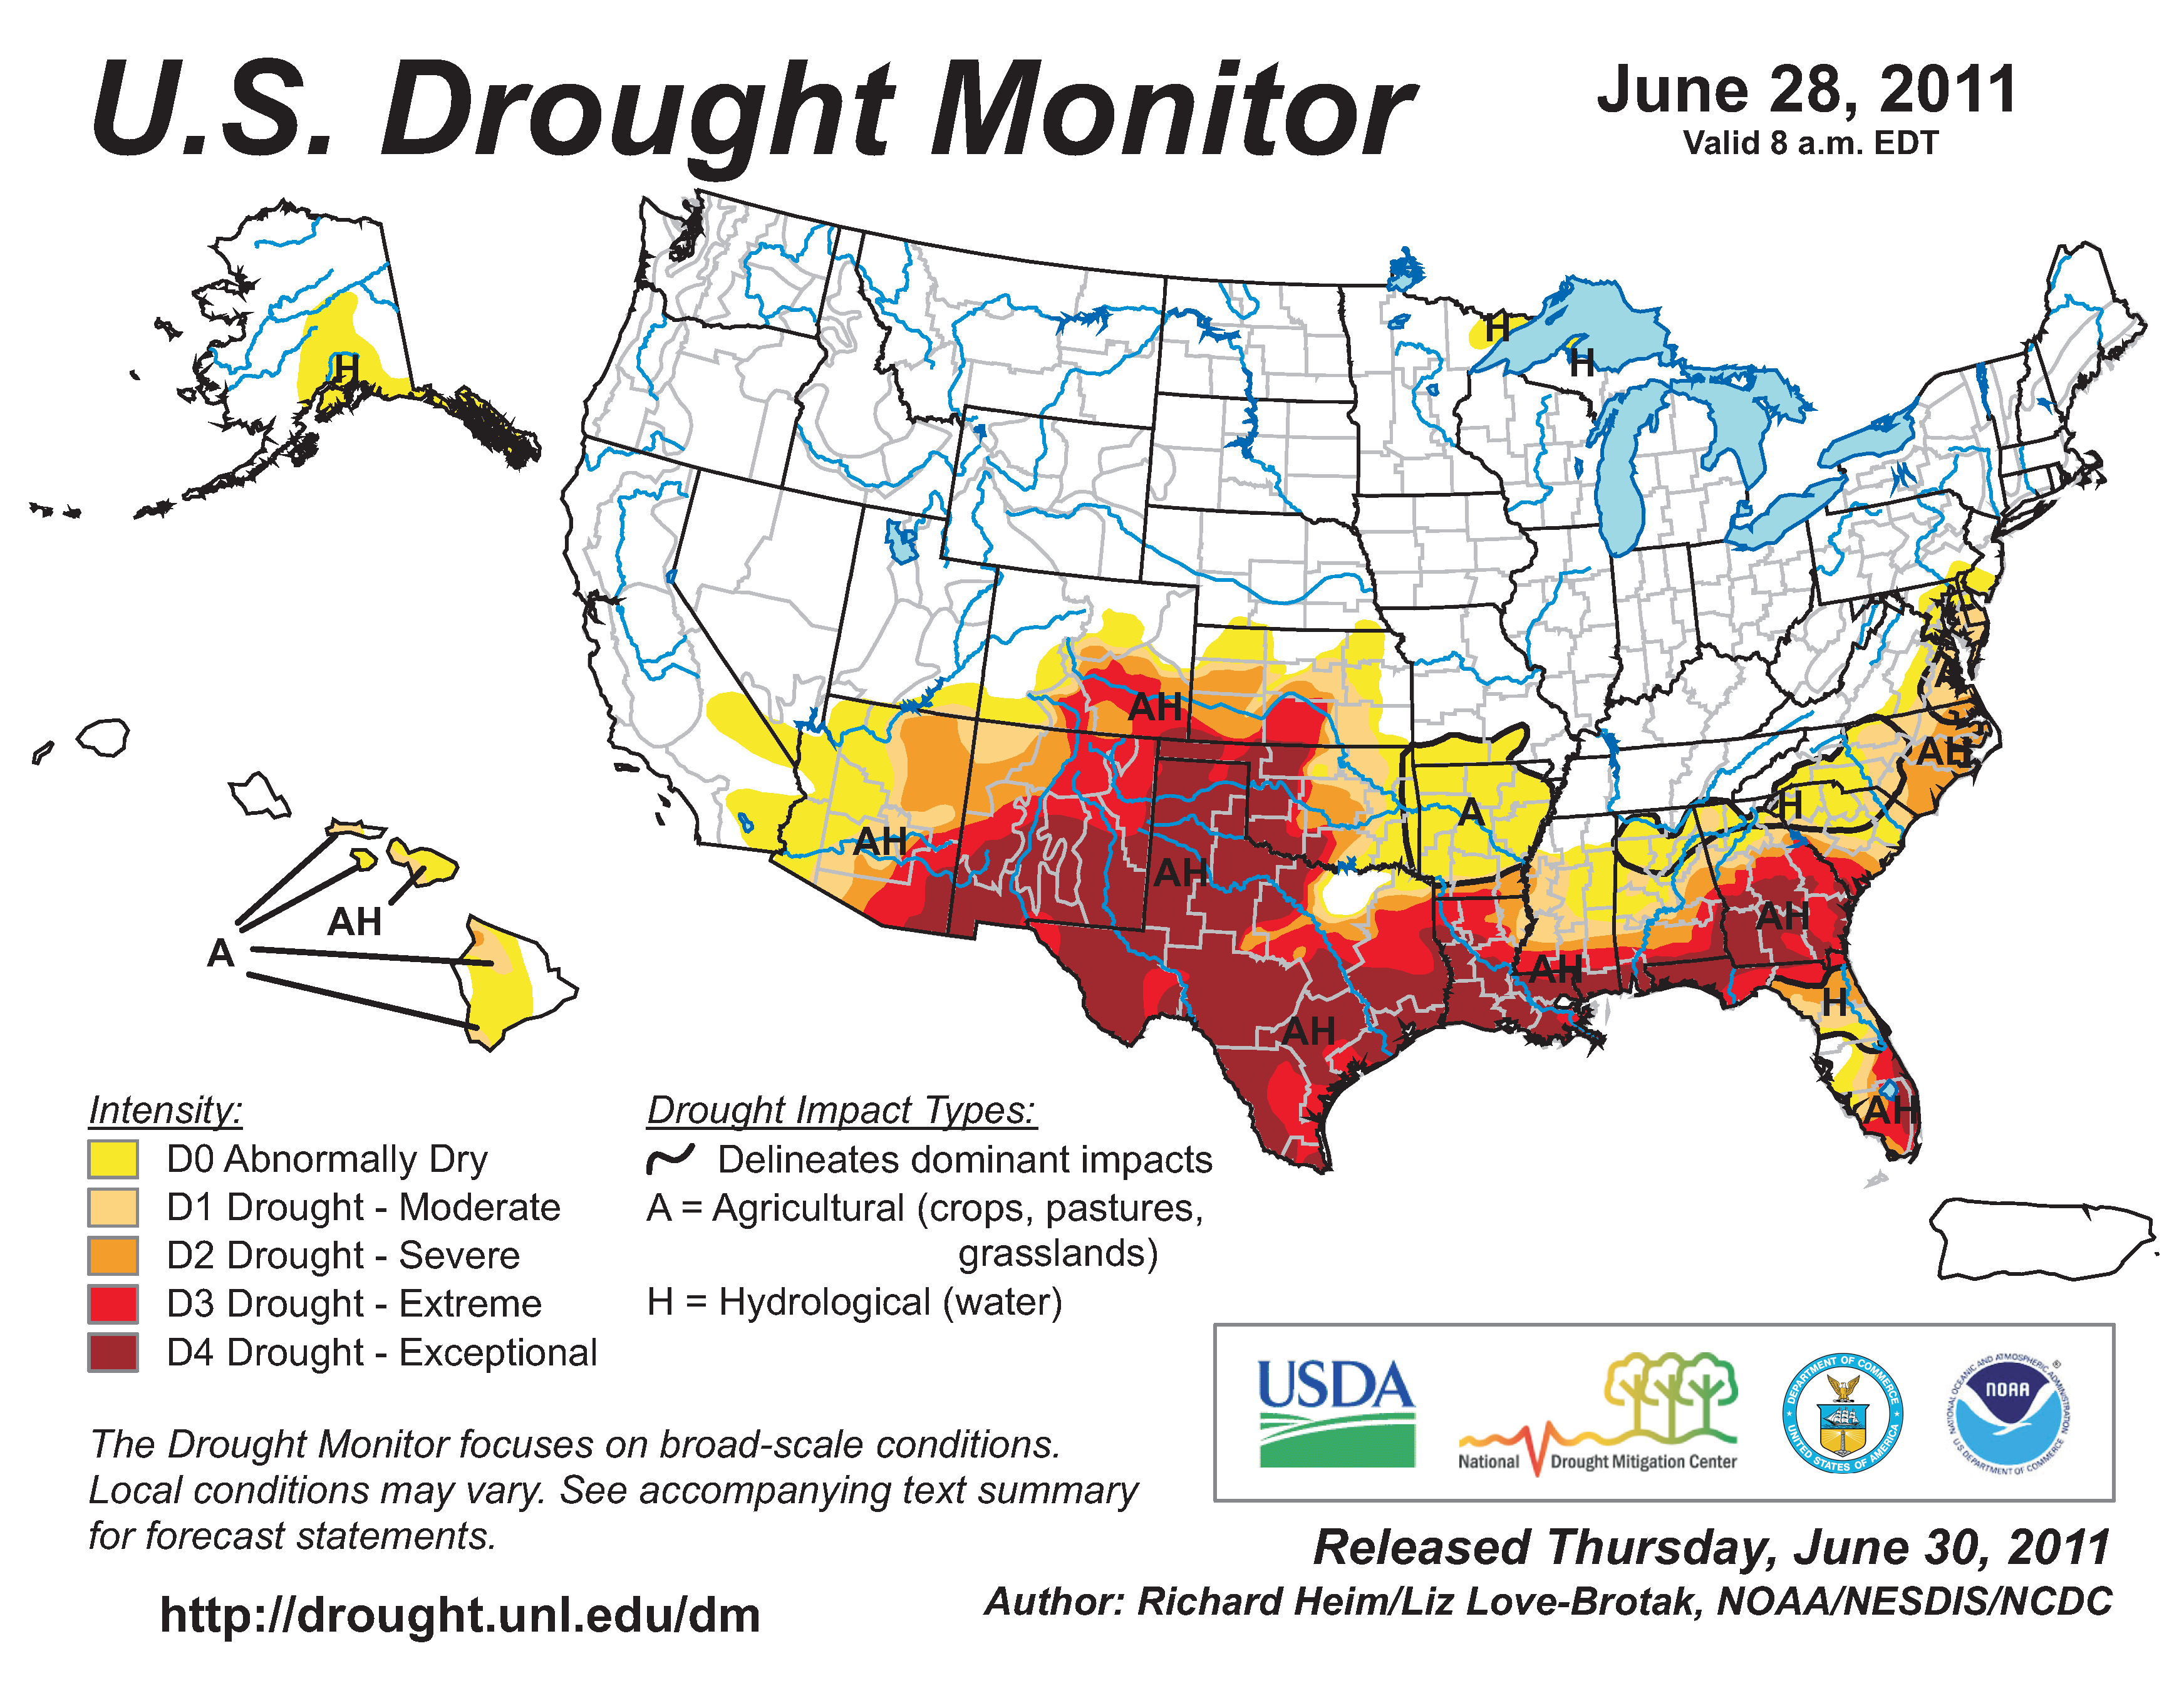 U.S. Drought Monitor map from 28 June 2011